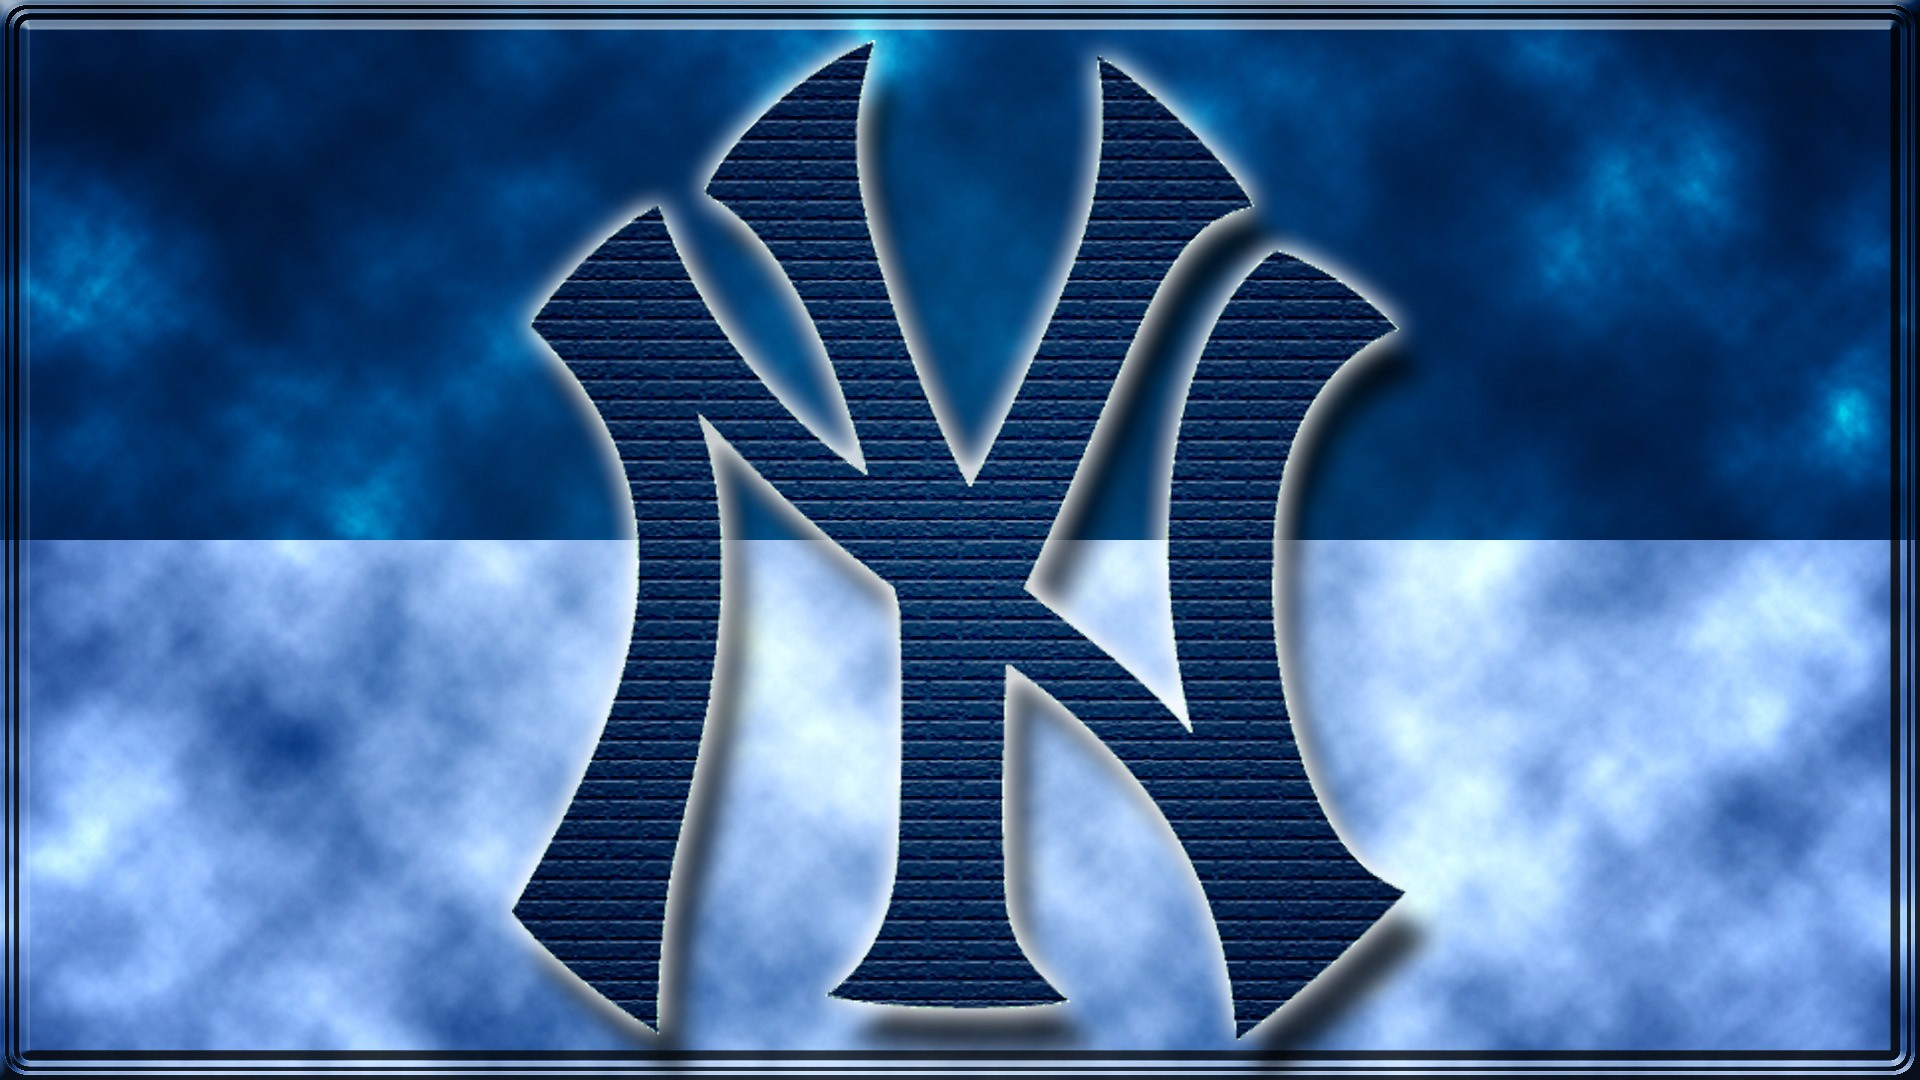 Visit ESPN to view the New York Yankees team schedule for the current and previous seasons